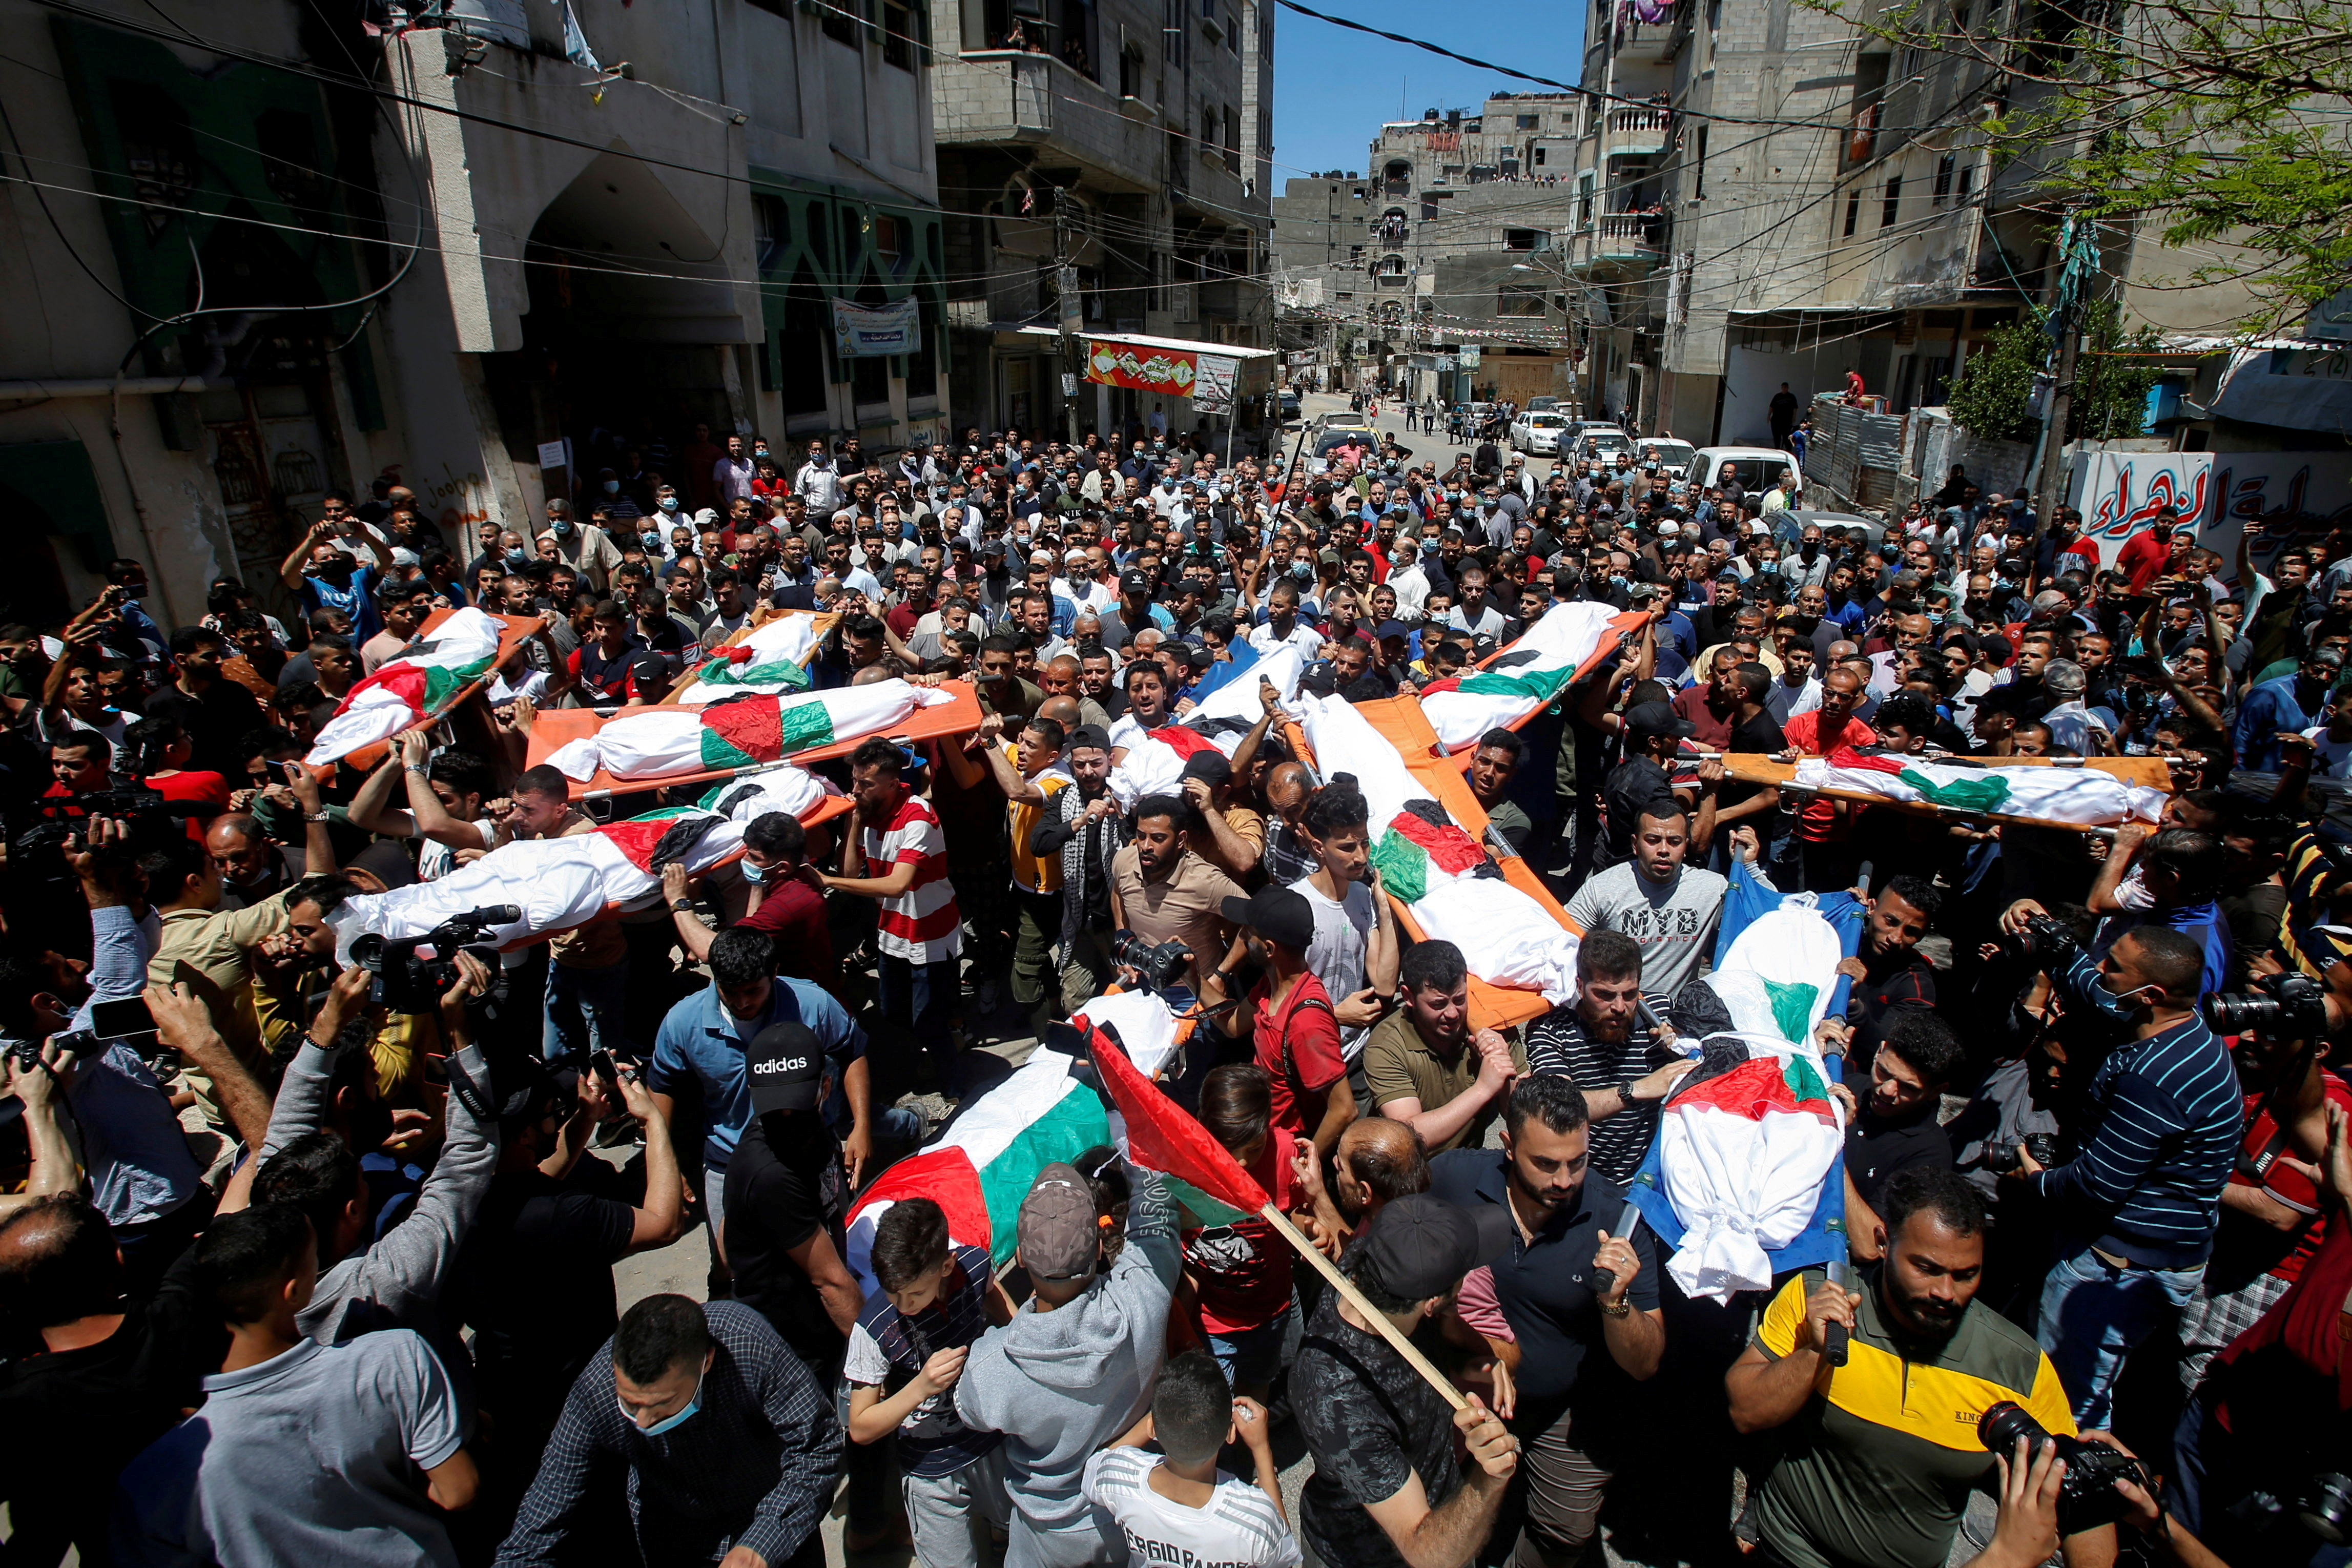 Mourners carry the bodies of Palestinians, including members of Abu Hatab family, who were killed amid a flare-up of Israeli-Palestinian violence, during their funeral at the Beach refugee camp, in Gaza City May 15, 2021. REUTERS/Mohammed Salem